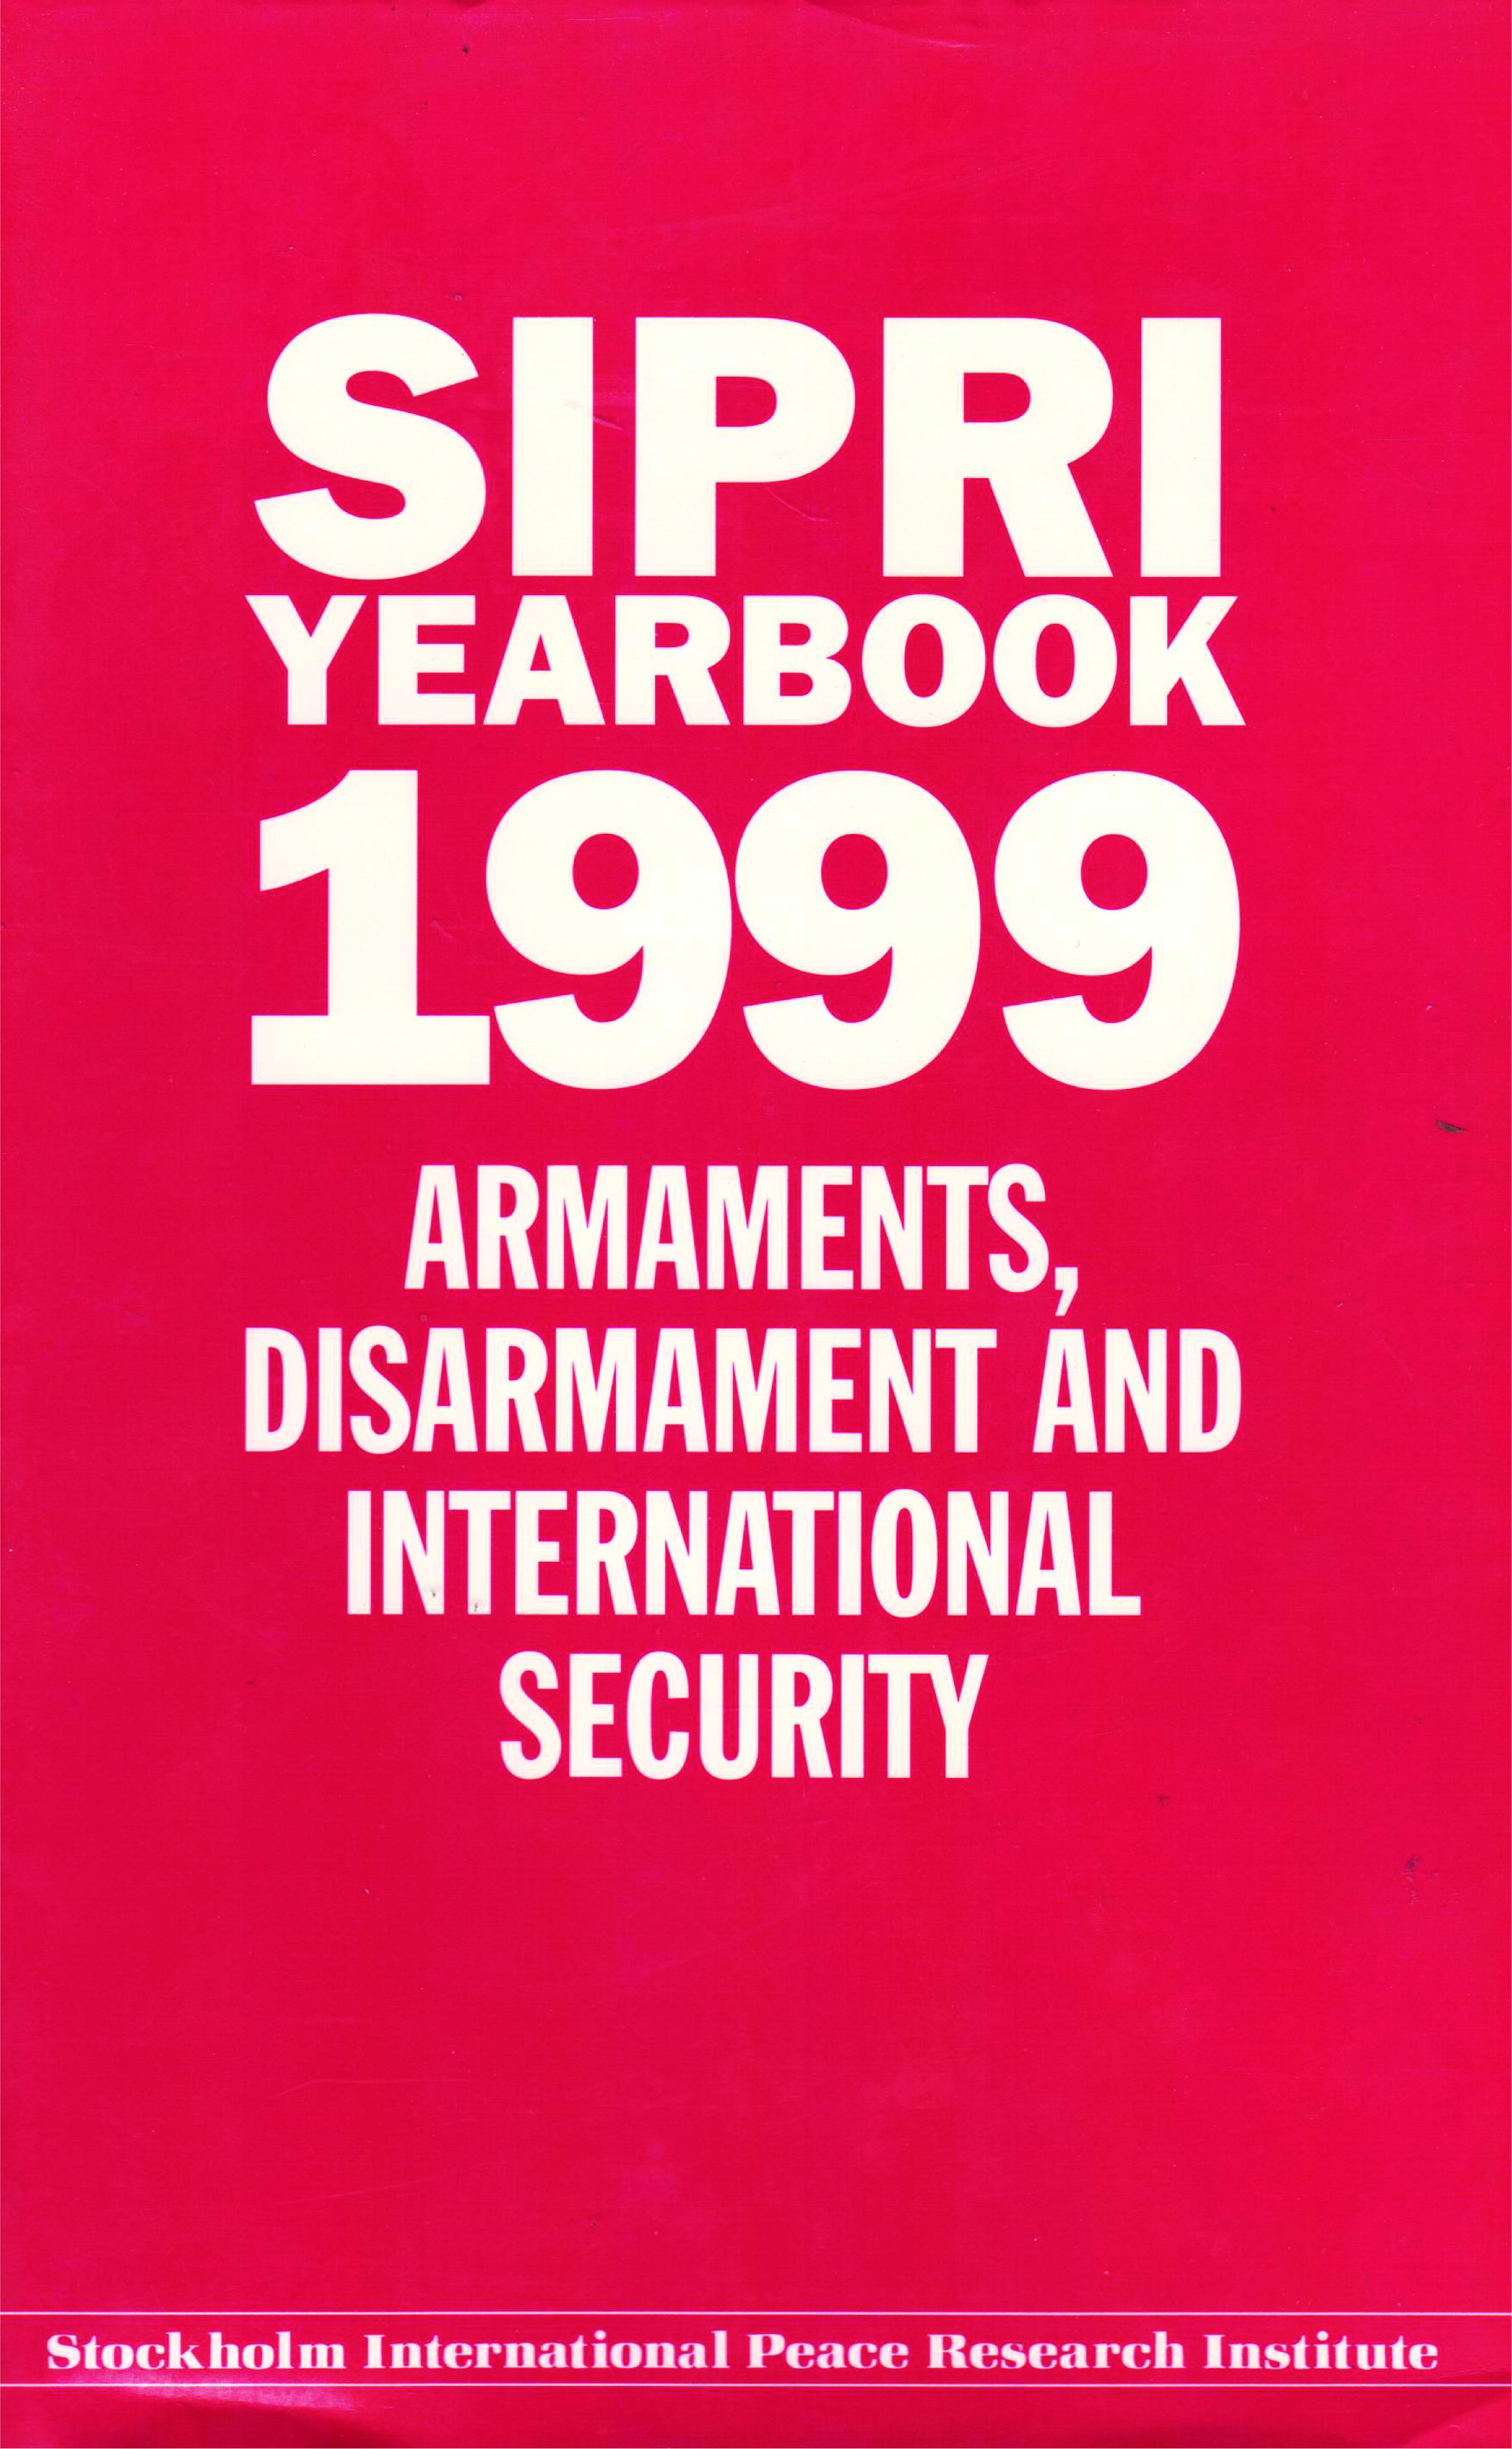 SIPRI yearbook 1999 cover